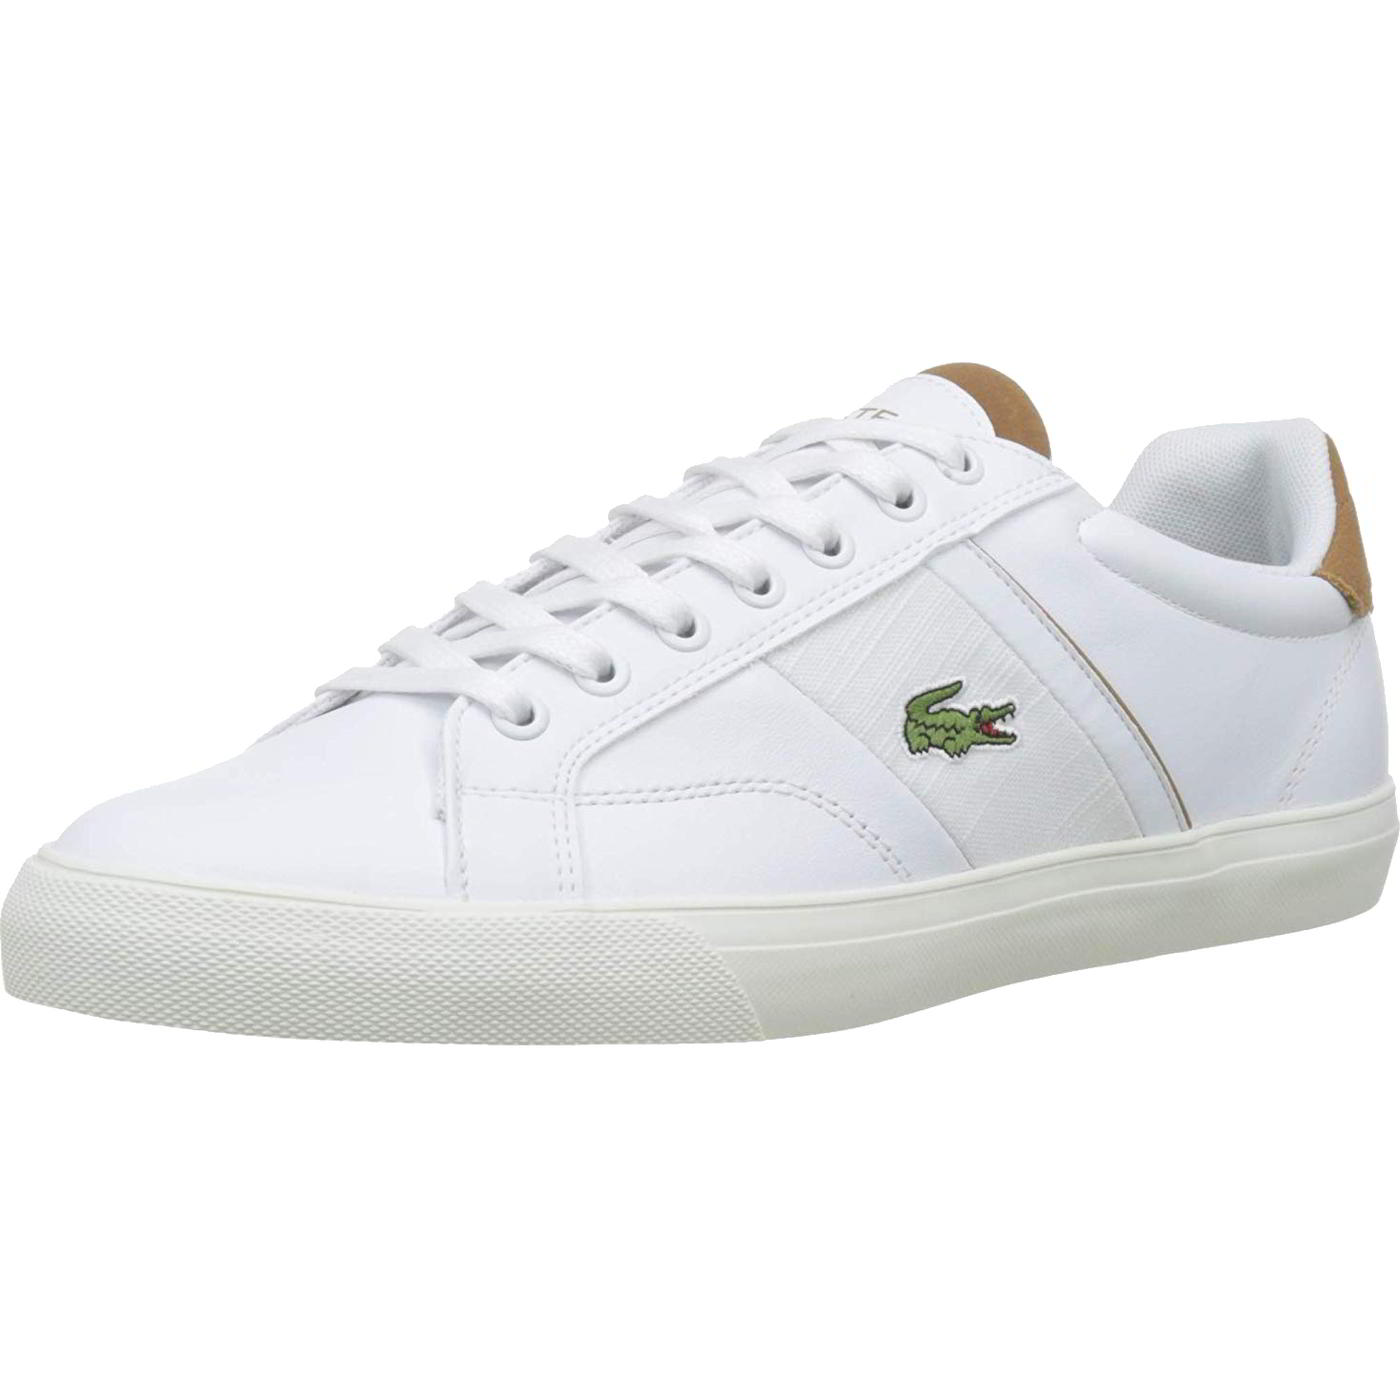 Lacoste Lydro Lace 119 1 CMA mens white  2019 Trainers **RRP:£85.00**